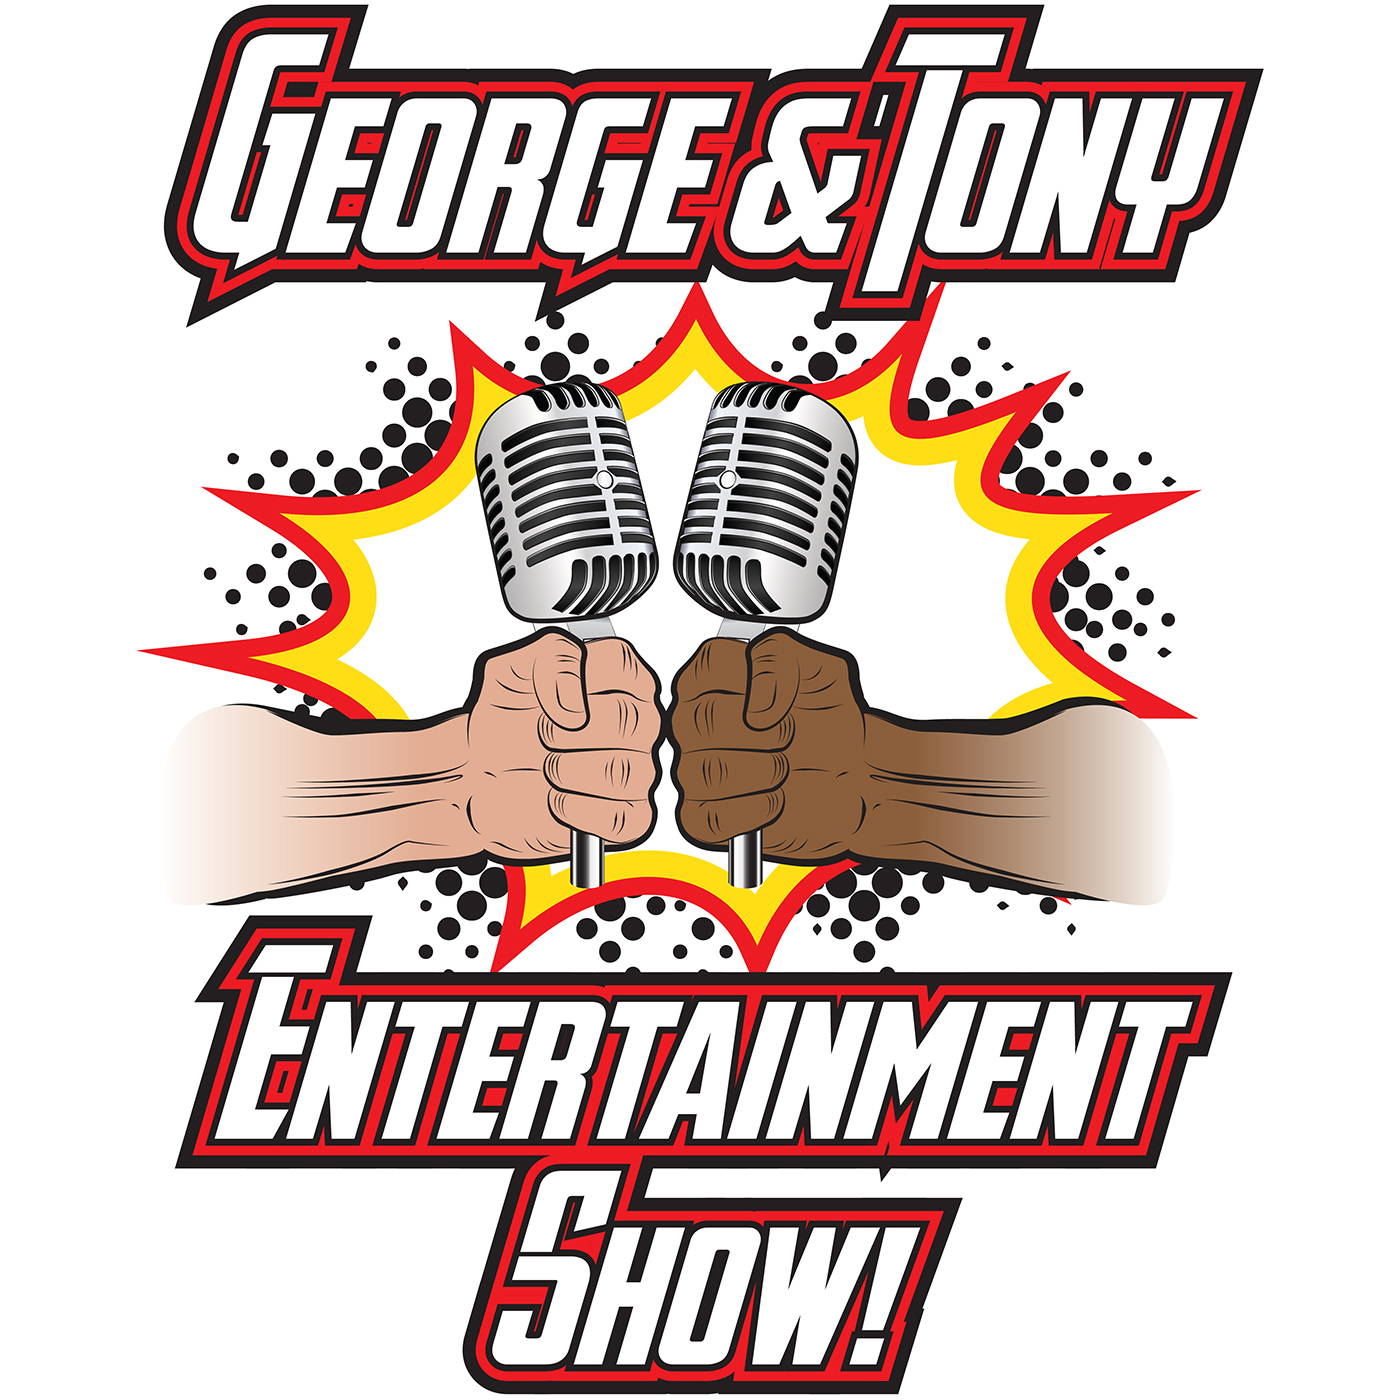 George and Tony Entertainment Show #128